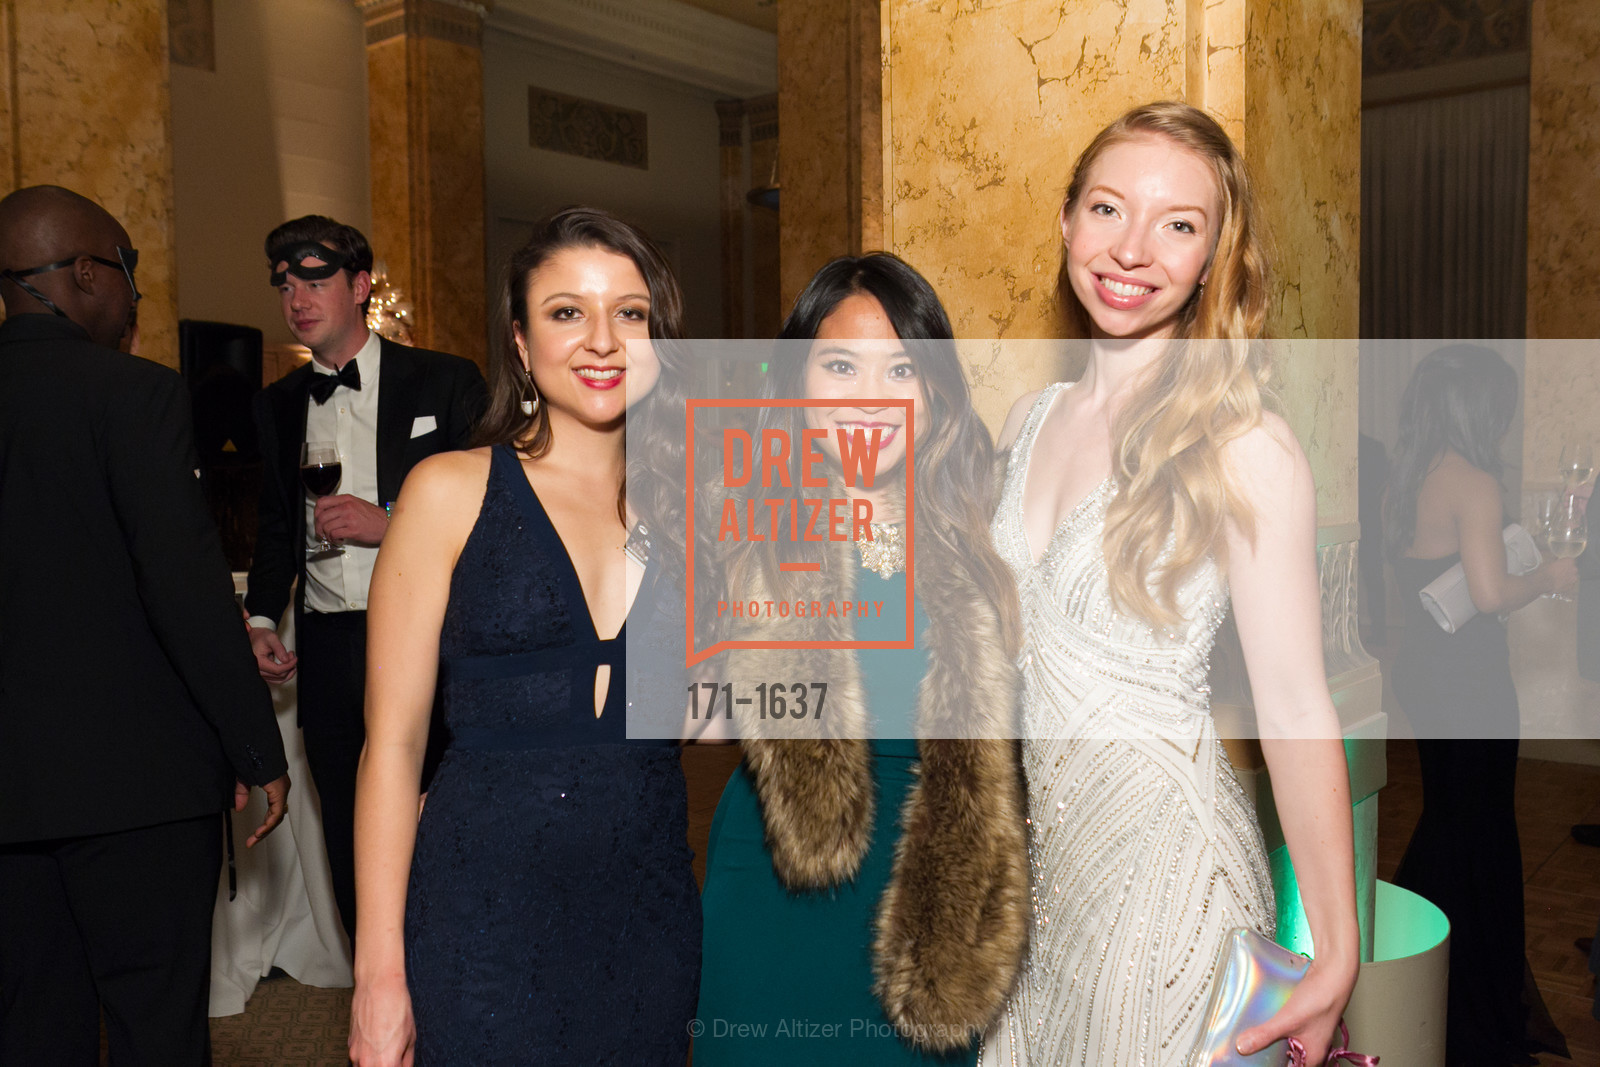 Marissa Corona, Rachel Tsao, Claire Callahan, Spinsters Holiday event, Metropolitan Club. 640 Sutter St, San Francisco, CA 94102, December 10th, 2016